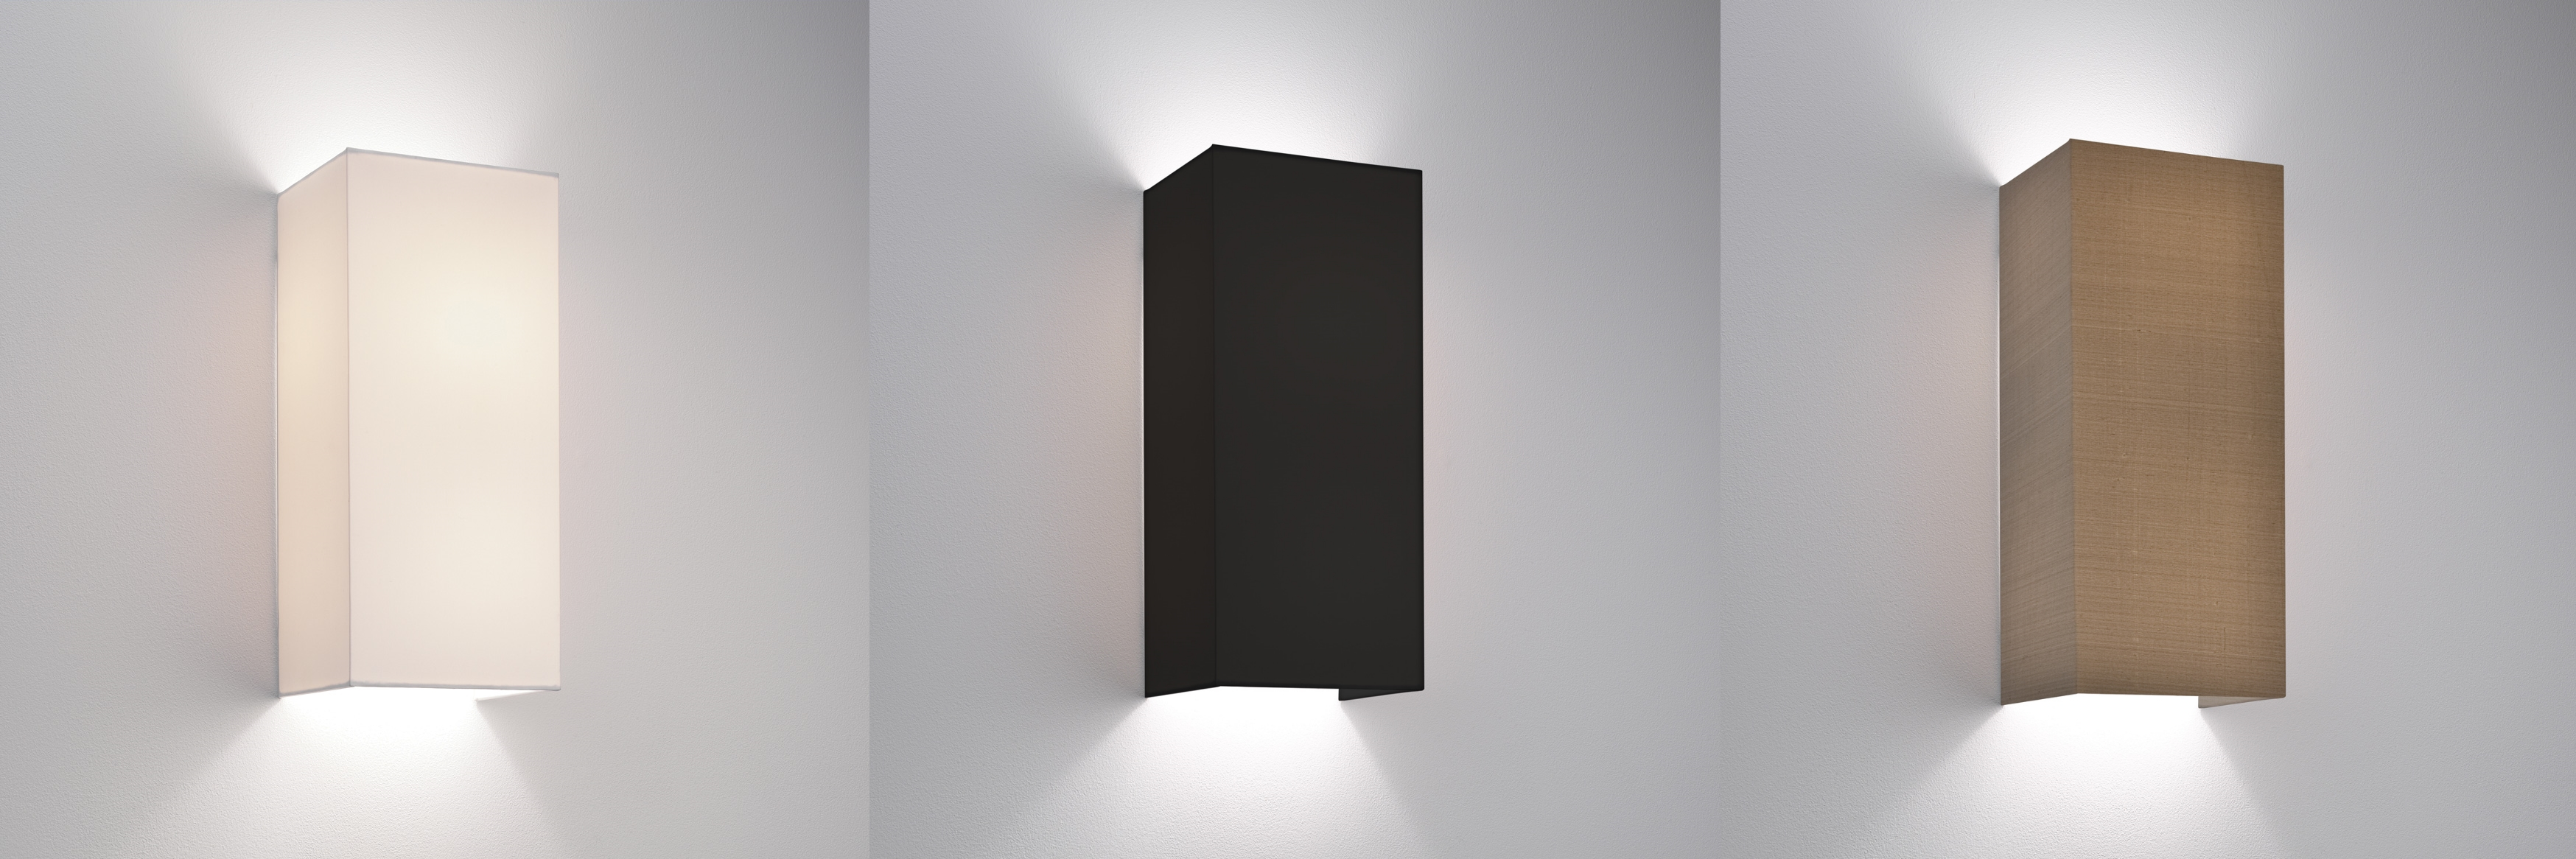 Astro Chuo 380 fabric wall light shade 2 x 60W E27 white black oyster eBay